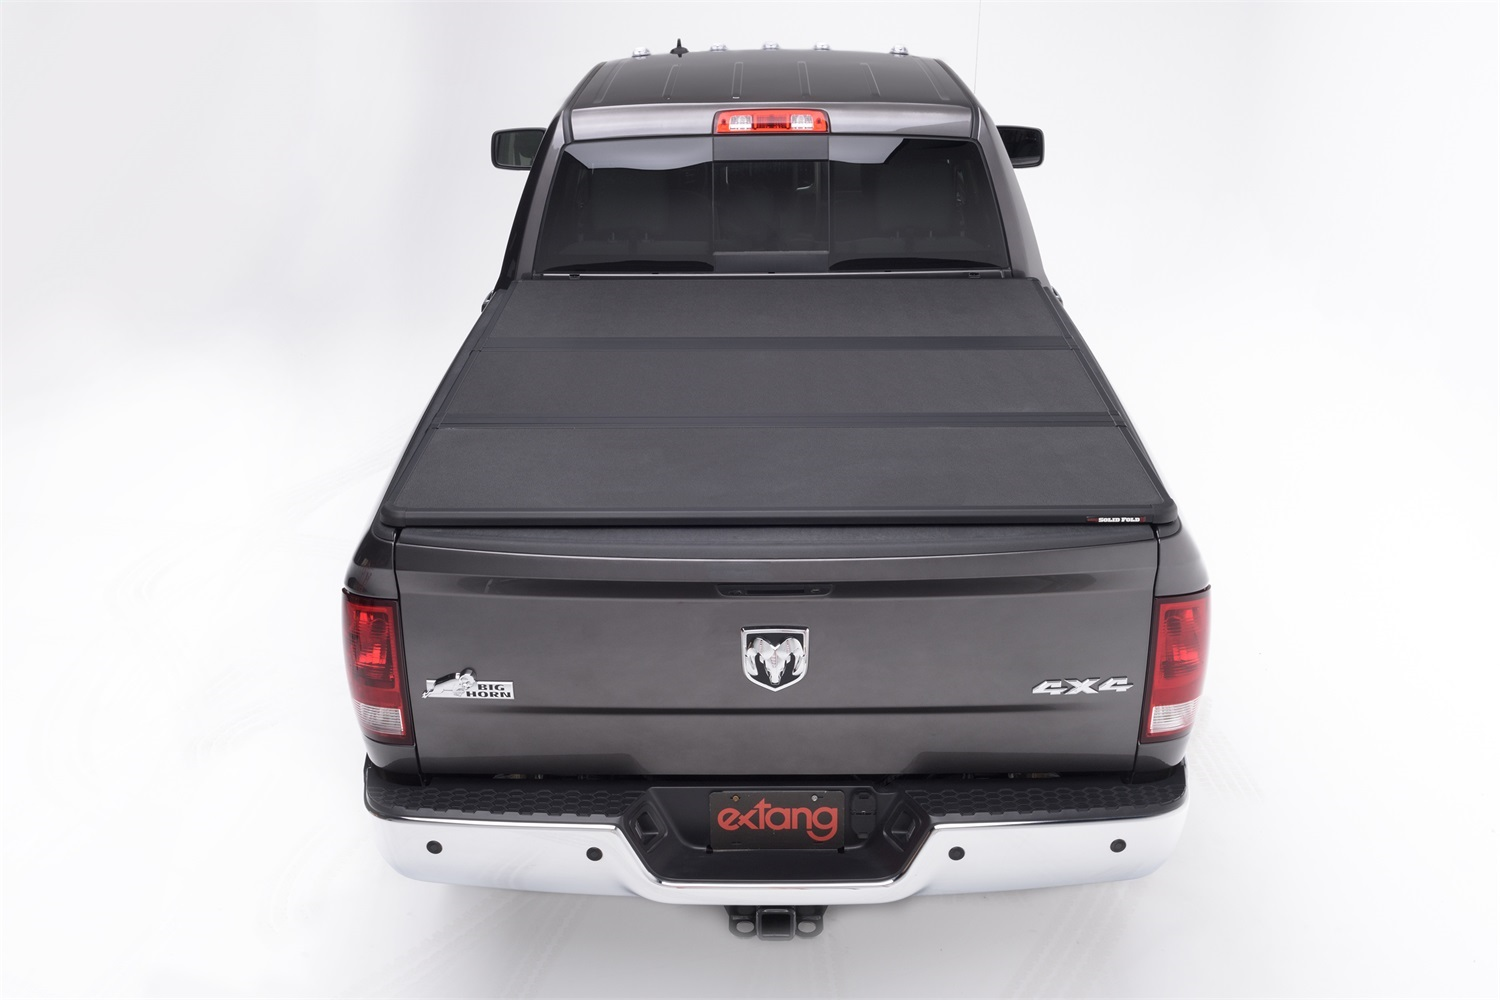 Extang 83425 Solid Fold 2.0 Tonneau Cover Fits 09-19 1500 1500 Classic Ram 1500